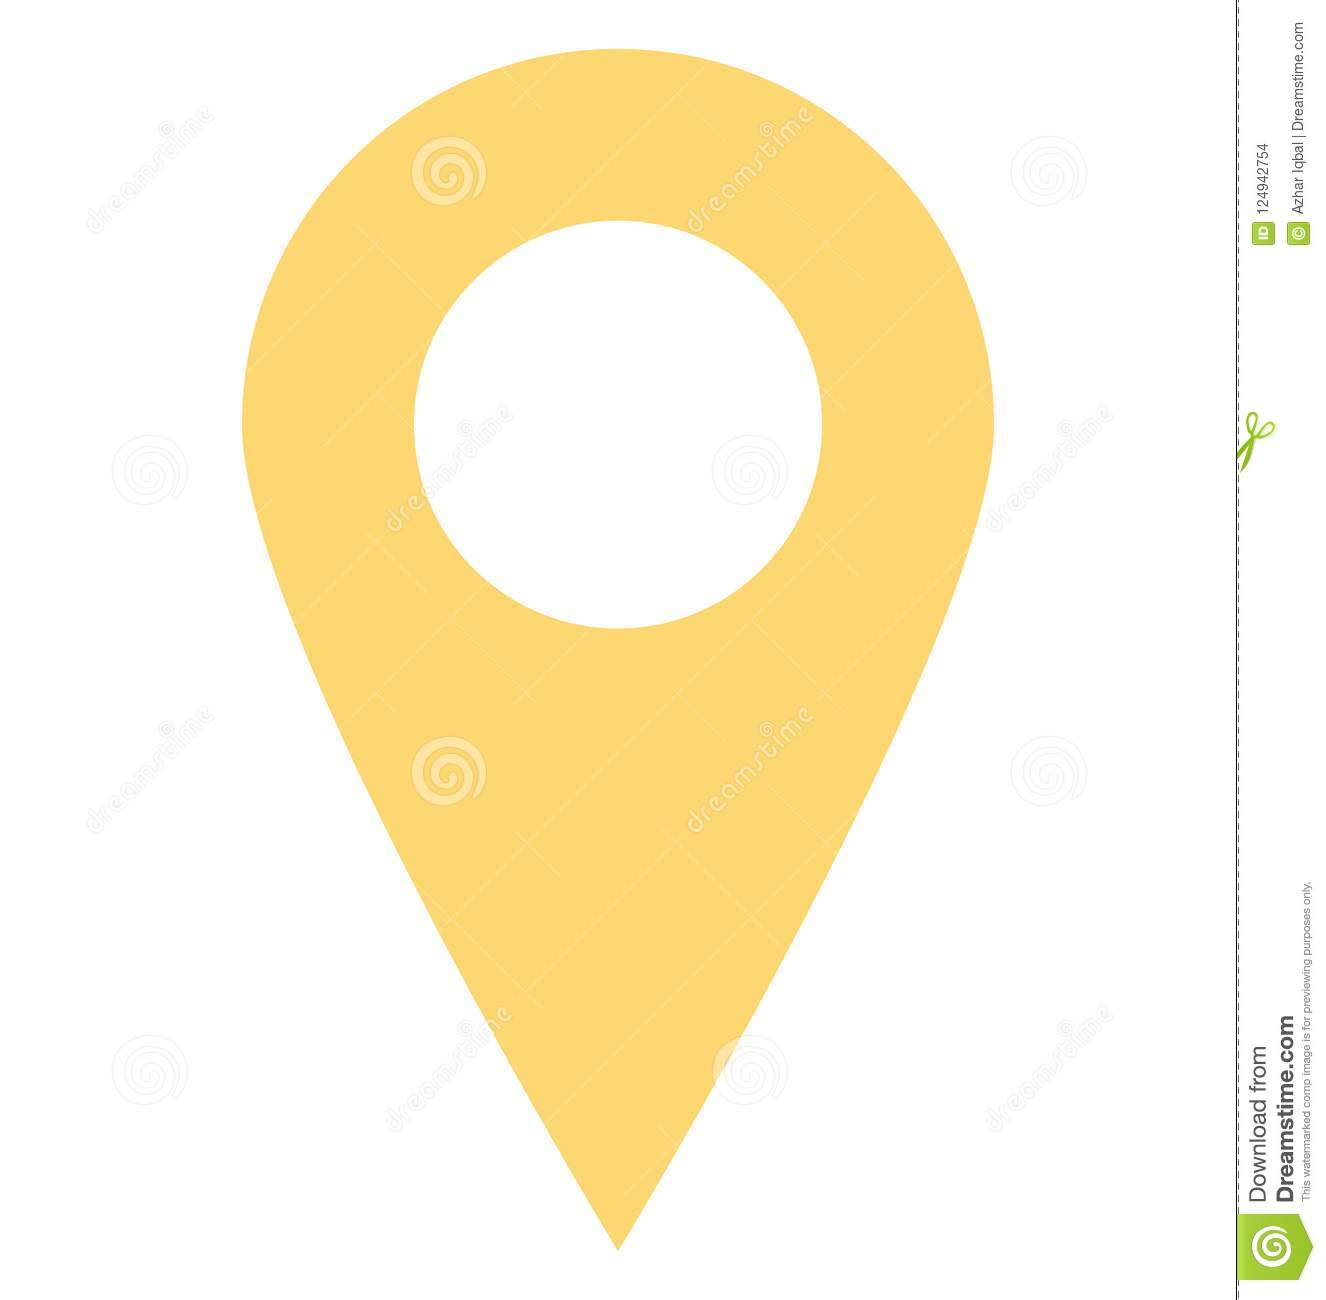 Map Locator Color Isolated Vector Icon Editable Stock Vector ... on star chart, russia location map, thematic map, bank of america locations map, key map, address map, karratha western australia map, walmart international locations map, bihar india map, pictorial maps, lagos nigeria on map, topological map, hyderabad location on map, istanbul location on map, choropleth map, islamabad location on map, geologic map, grid map, physical map, world map, impz dubai location map, france location map, west us map, topographic map, mappa mundi, special purpose map, plan your road trip map, darfur location on map, t and o map, city map,